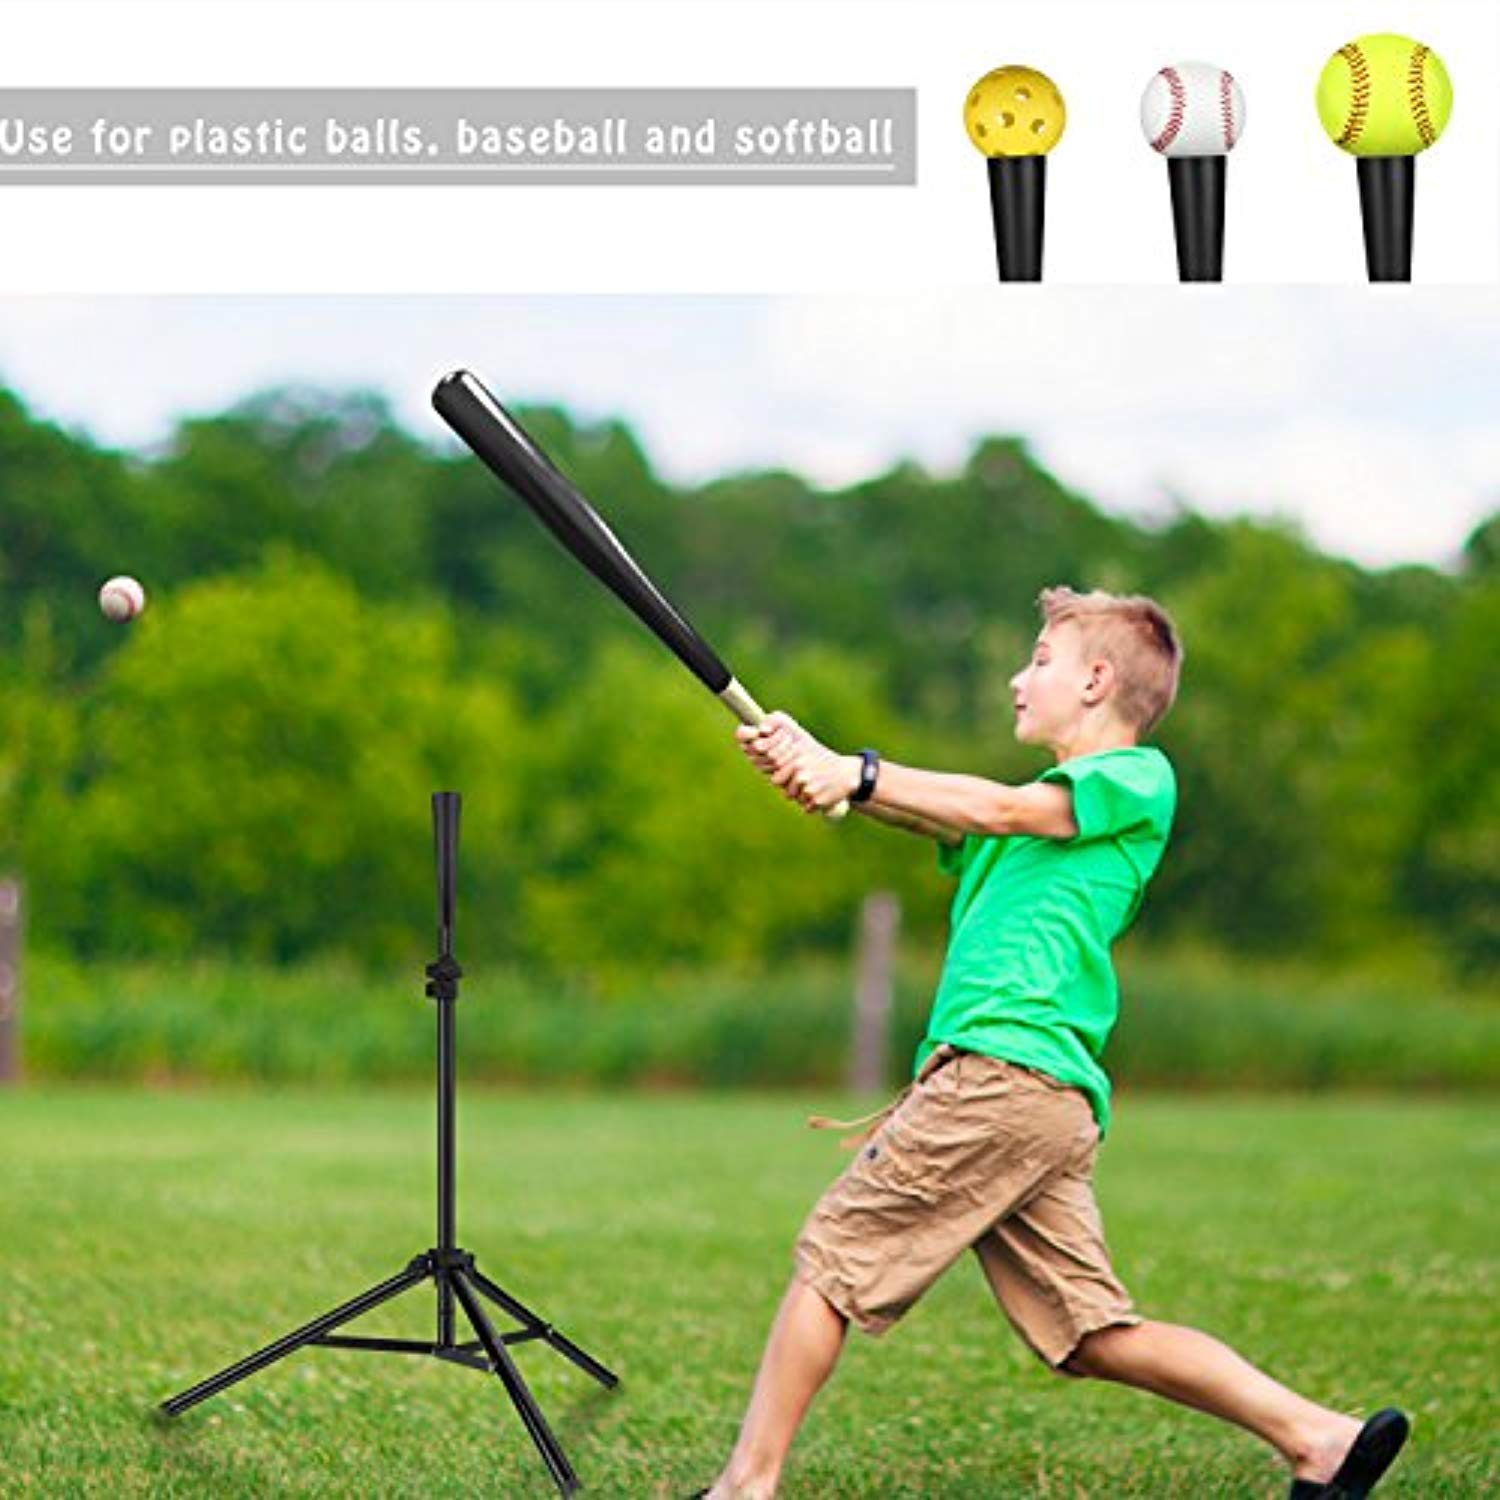 Portable tripod baseball batting Tee